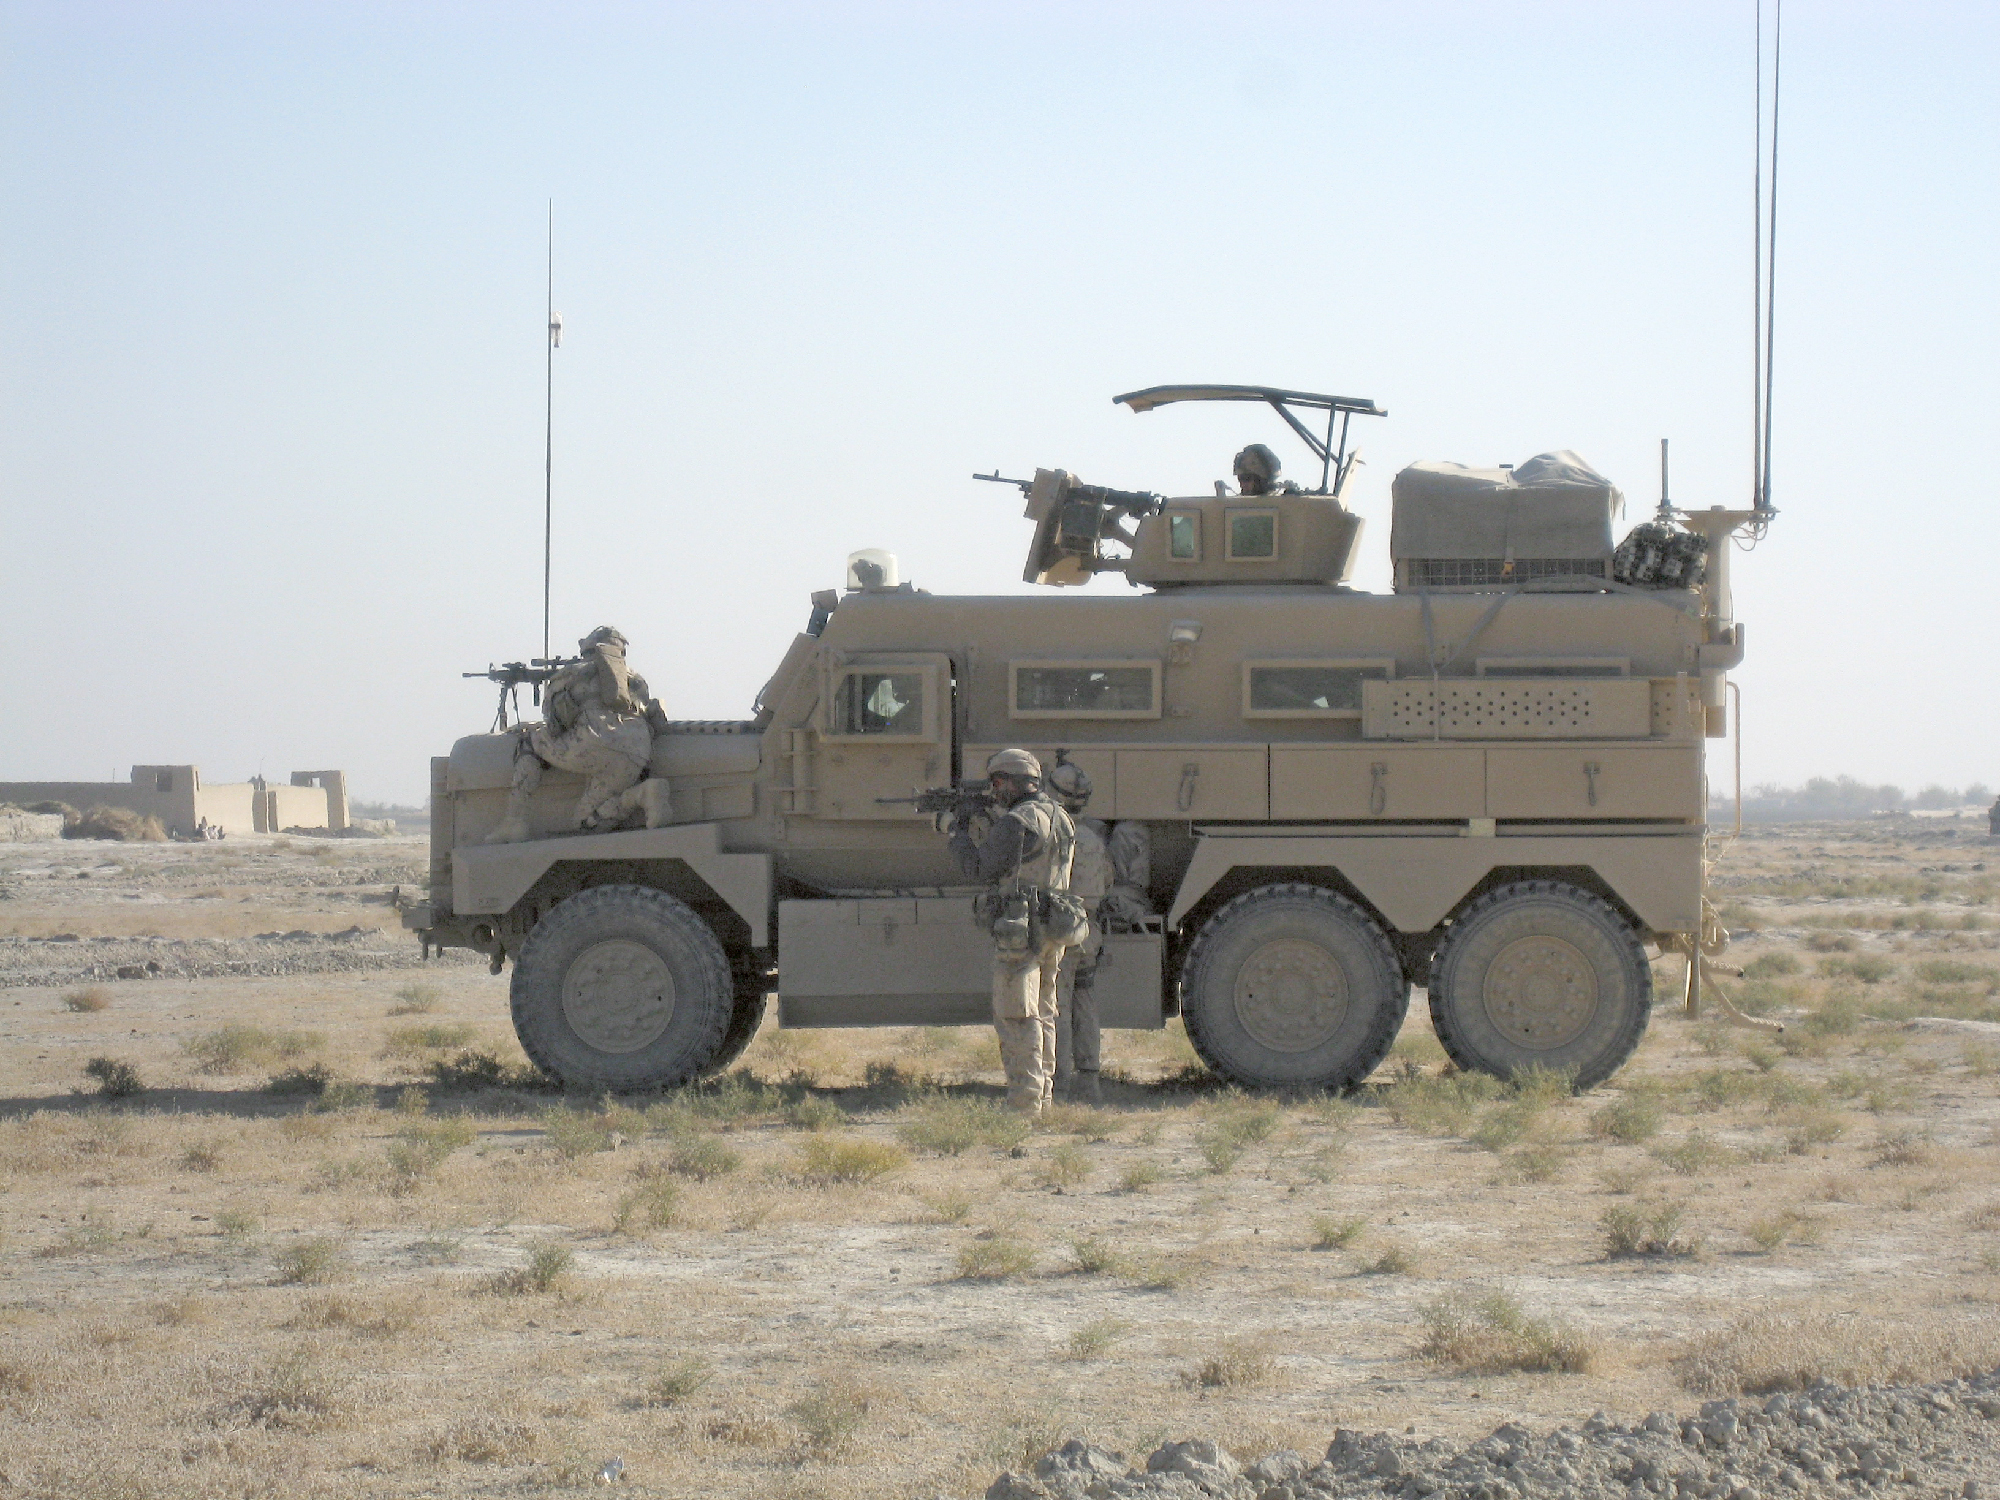 A Corporal of the Seaforth Highlanders has noticed suspect activity. He uses the fender of a Cougar to keep an eye on an individual who was paying unusual attention to the Canadian convoy outside the village of Nakhonay, Kandahar province, Nov. 2009. The vehicle was used by a Canadian Explosives Ordinance Disposal team.